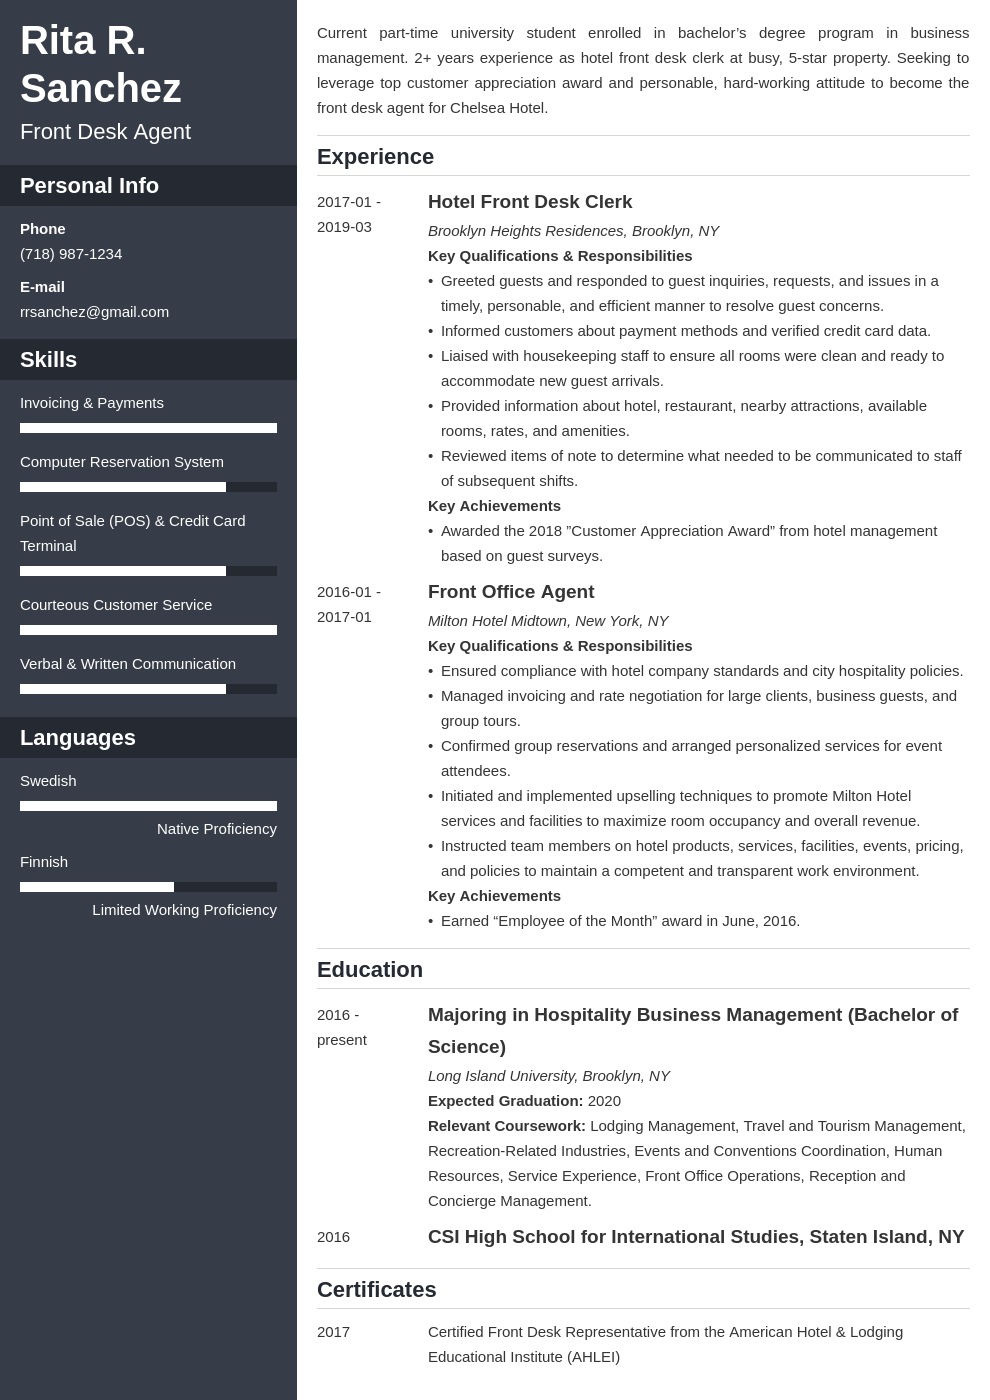 front desk resume example template cascade